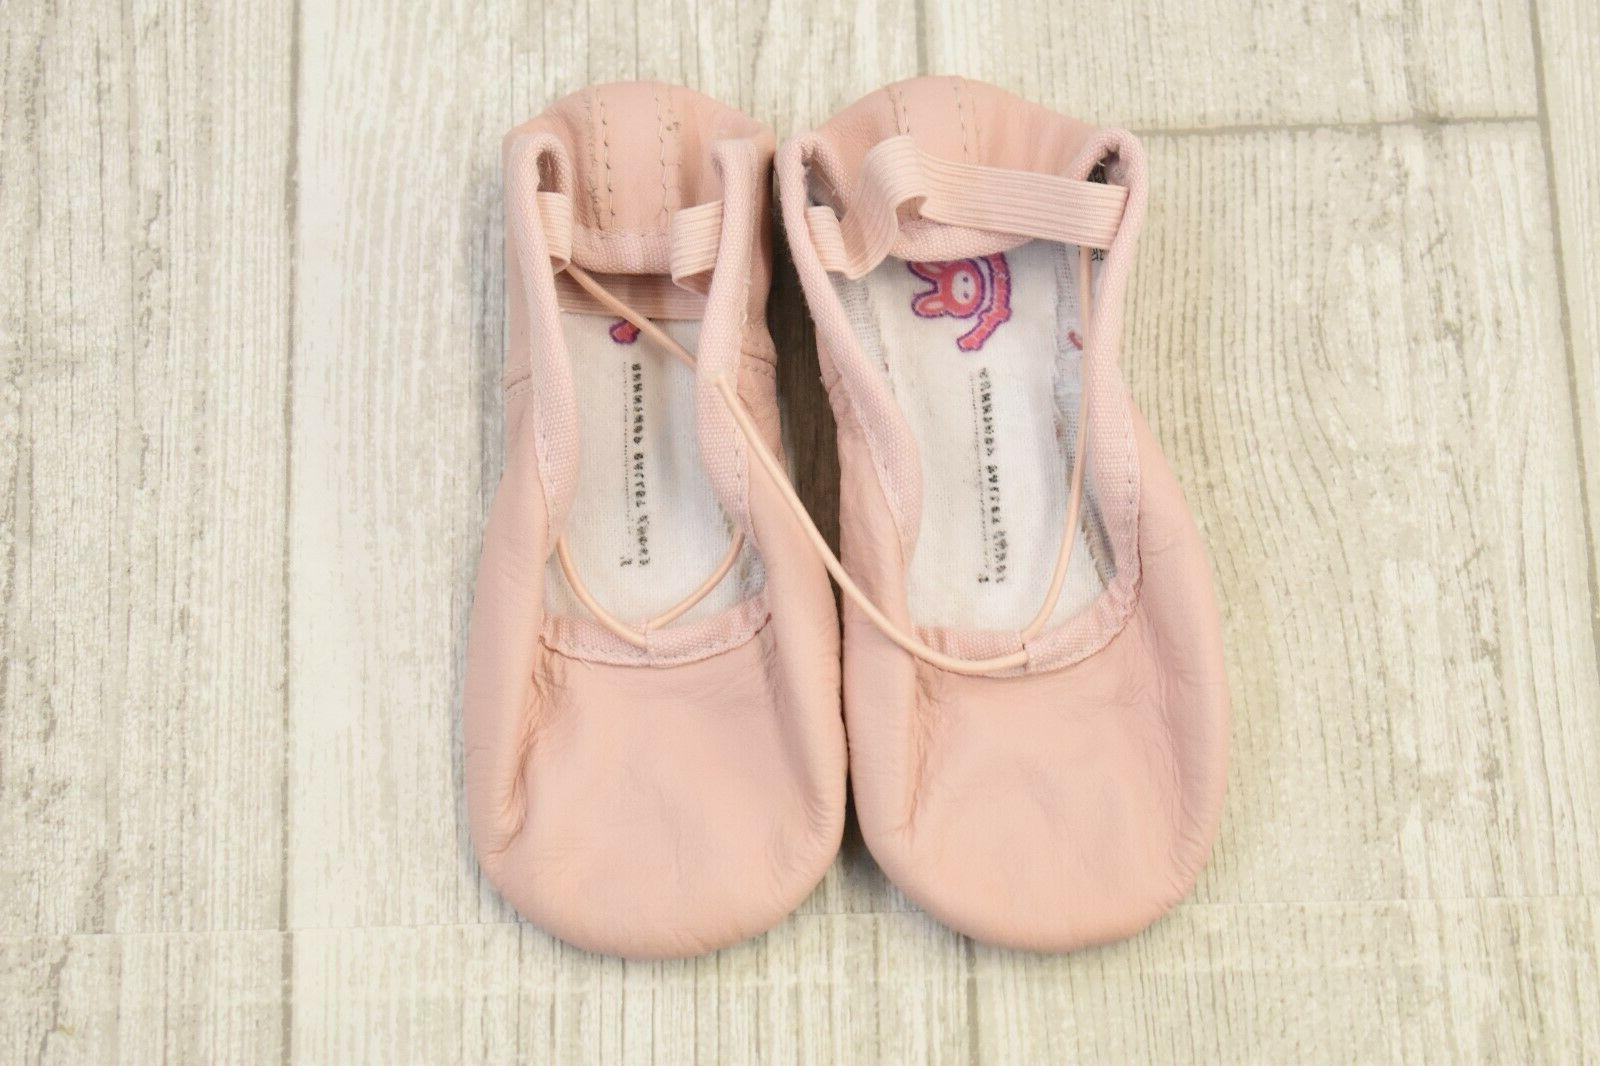 + S0225G Ballet Slippers-Toddler Pink Size